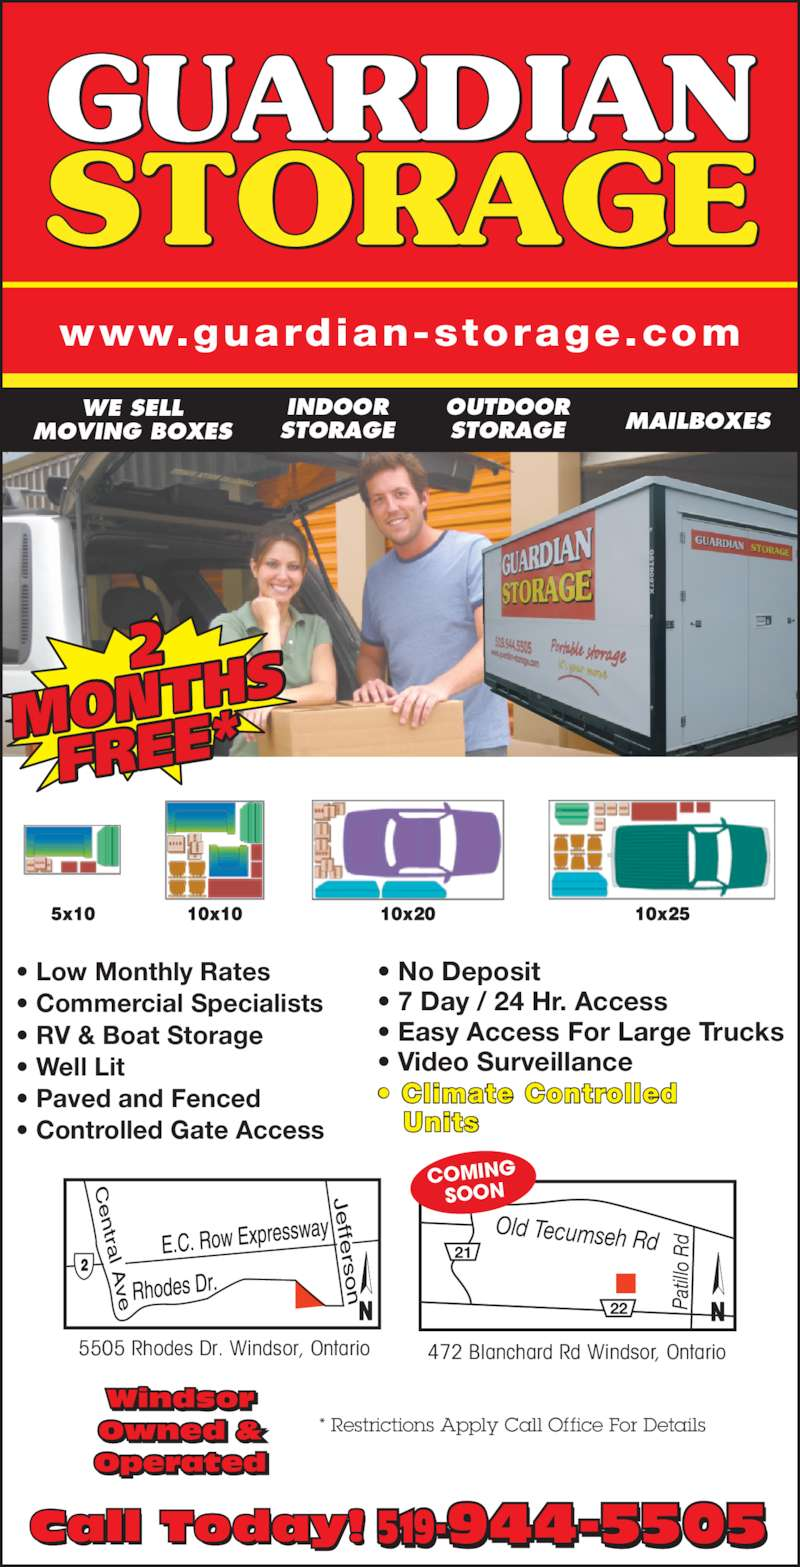 Guardian Storage (519-944-5505) - Display Ad - STORAGE OUTDOOR INDOOR STORAGE MAILBOXES WE SELL MOVING BOXES 5505 Rhodes Dr. Windsor, Ontario Old Tecumseh Rd dR ollitaP22 21 472 Blanchard Rd Windsor, Ontario COMING SOON Call Today! 519-944-5505- * Restrictions Apply Call Office For Details Windsor Owned & Operated • Low Monthly Rates • Commercial Specialists • RV & Boat Storage • Well Lit • Paved and Fenced • Controlled Gate Access • No Deposit • 7 Day / 24 Hr. Access • Easy Access For Large Trucks • Video Surveillance    Units www.guardian-storage.com MONTH FREE* • Climate Controlled